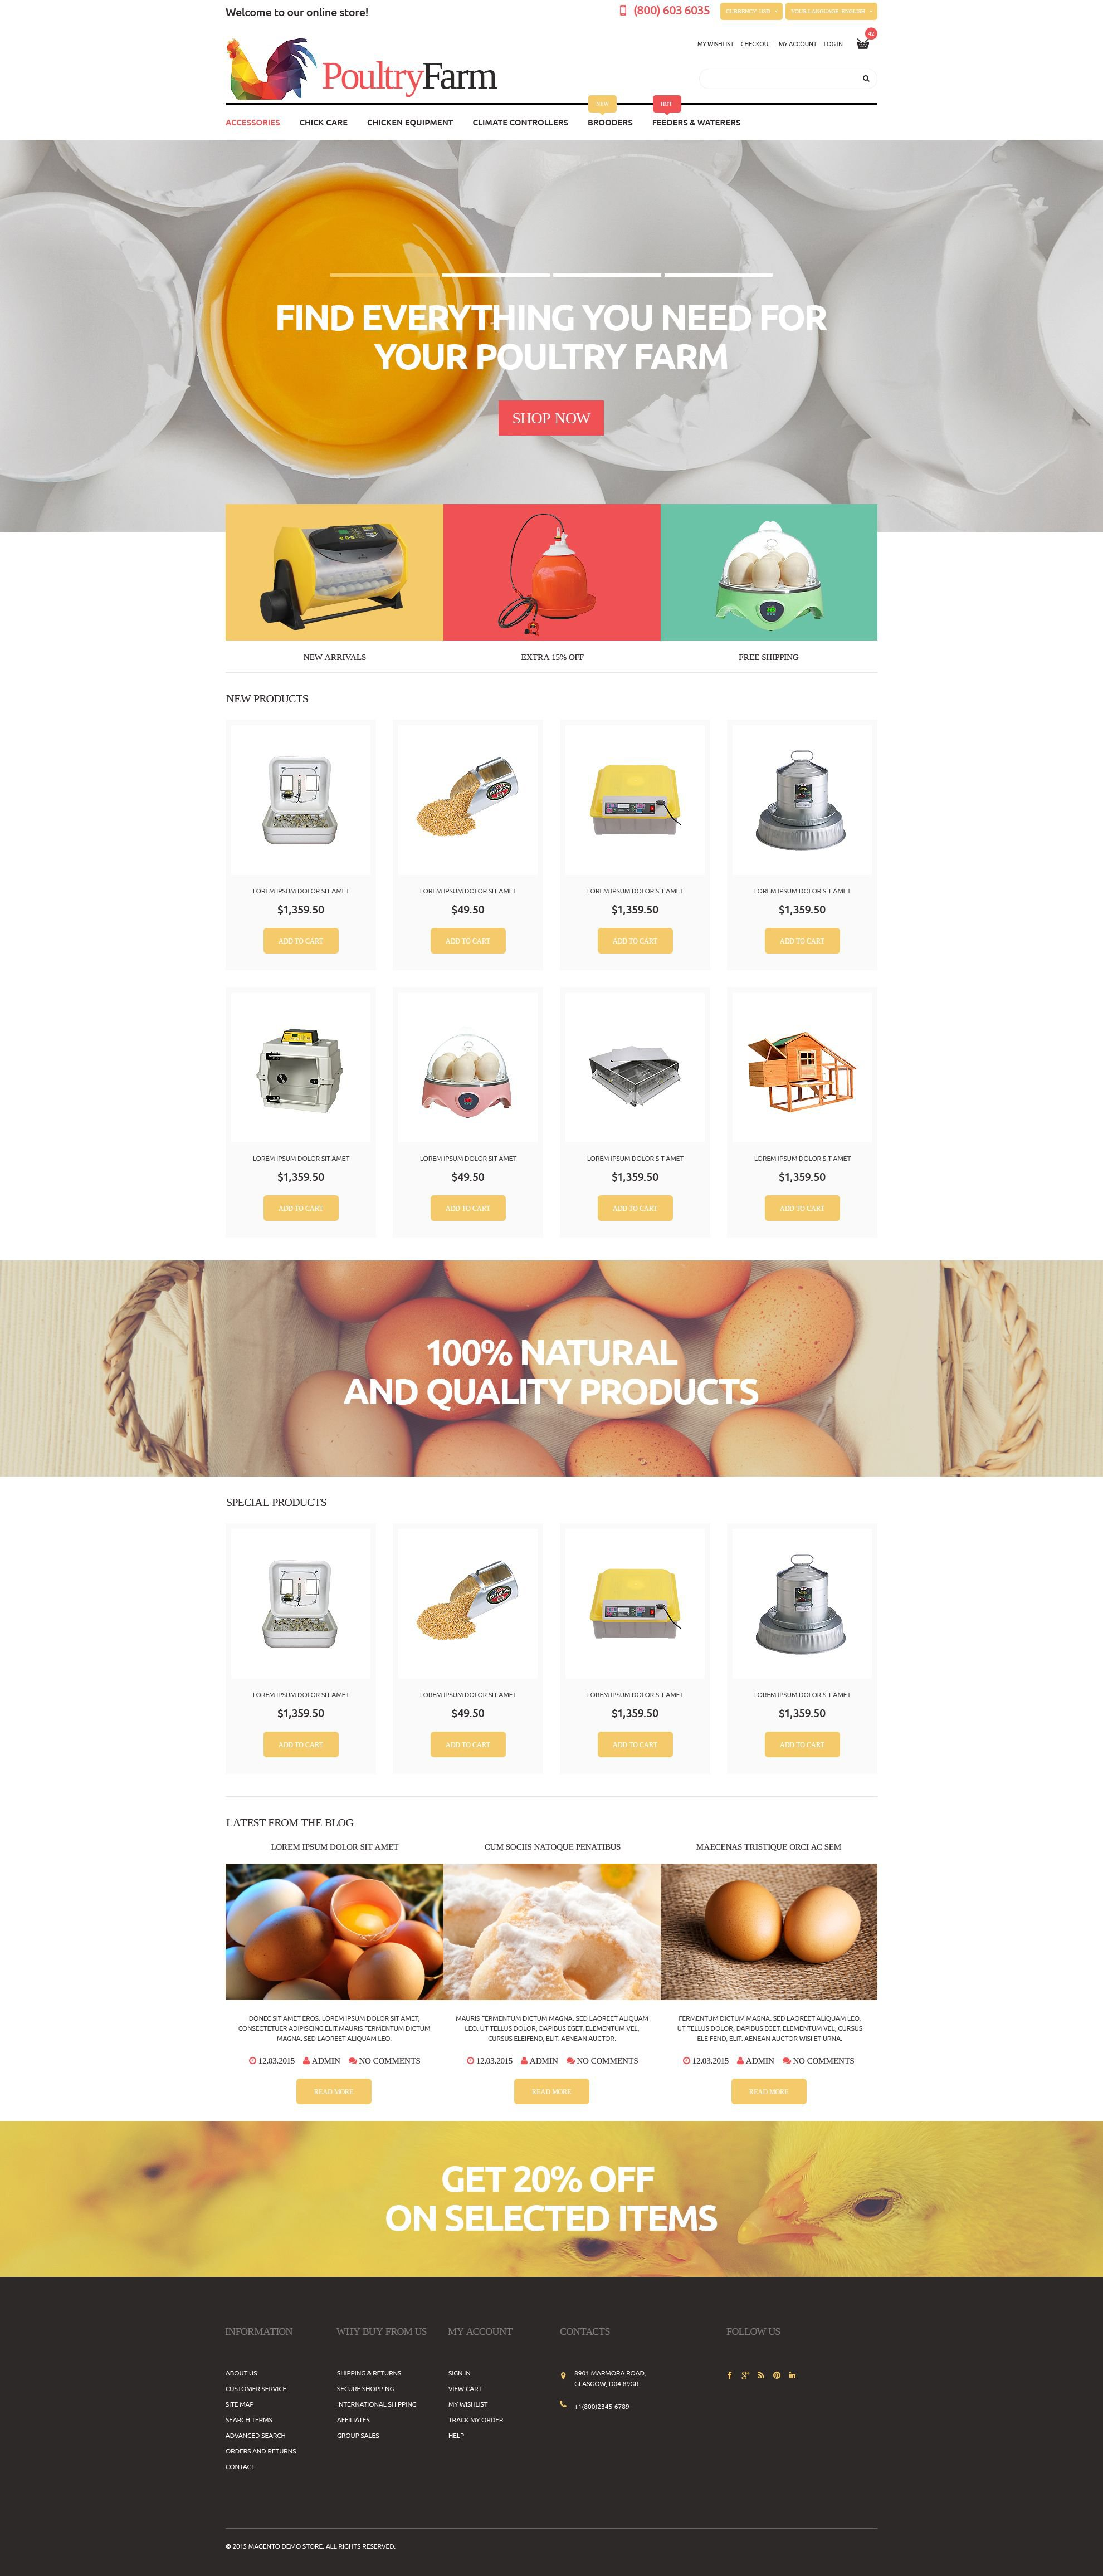 The Poultry Farm Magento Design 52990, one of the best Magento themes of its kind (agriculture, most popular), also known as poultry farm Magento template, supplies Magento template, ponltry Magento template, farm Magento template, egg Magento template, eggs Magento template, shell Magento template, pasteurized Magento template, food Magento template, yolk Magento template, protein Magento template, delicious Magento template, recipe Magento template, nourishing Magento template, natural and related with poultry farm, supplies, ponltry, farm, egg, eggs, shell, pasteurized, food, yolk, protein, delicious, recipe, nourishing, natural, etc.